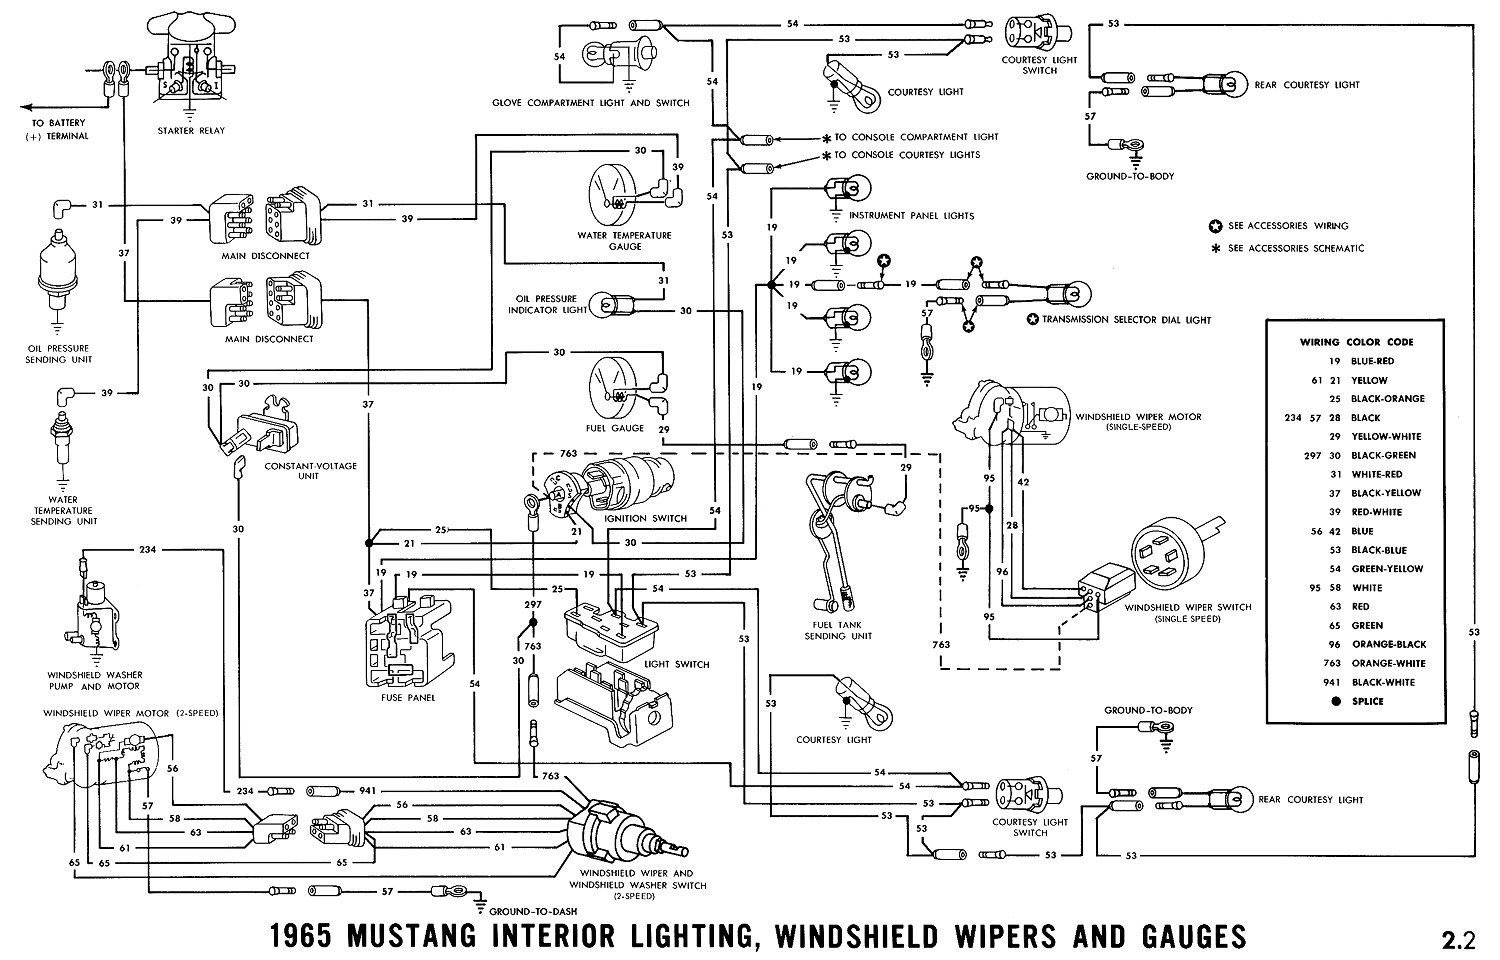 71 Camaro Wiring Diagram Just Another Blog 70 Schematic Images Gallery